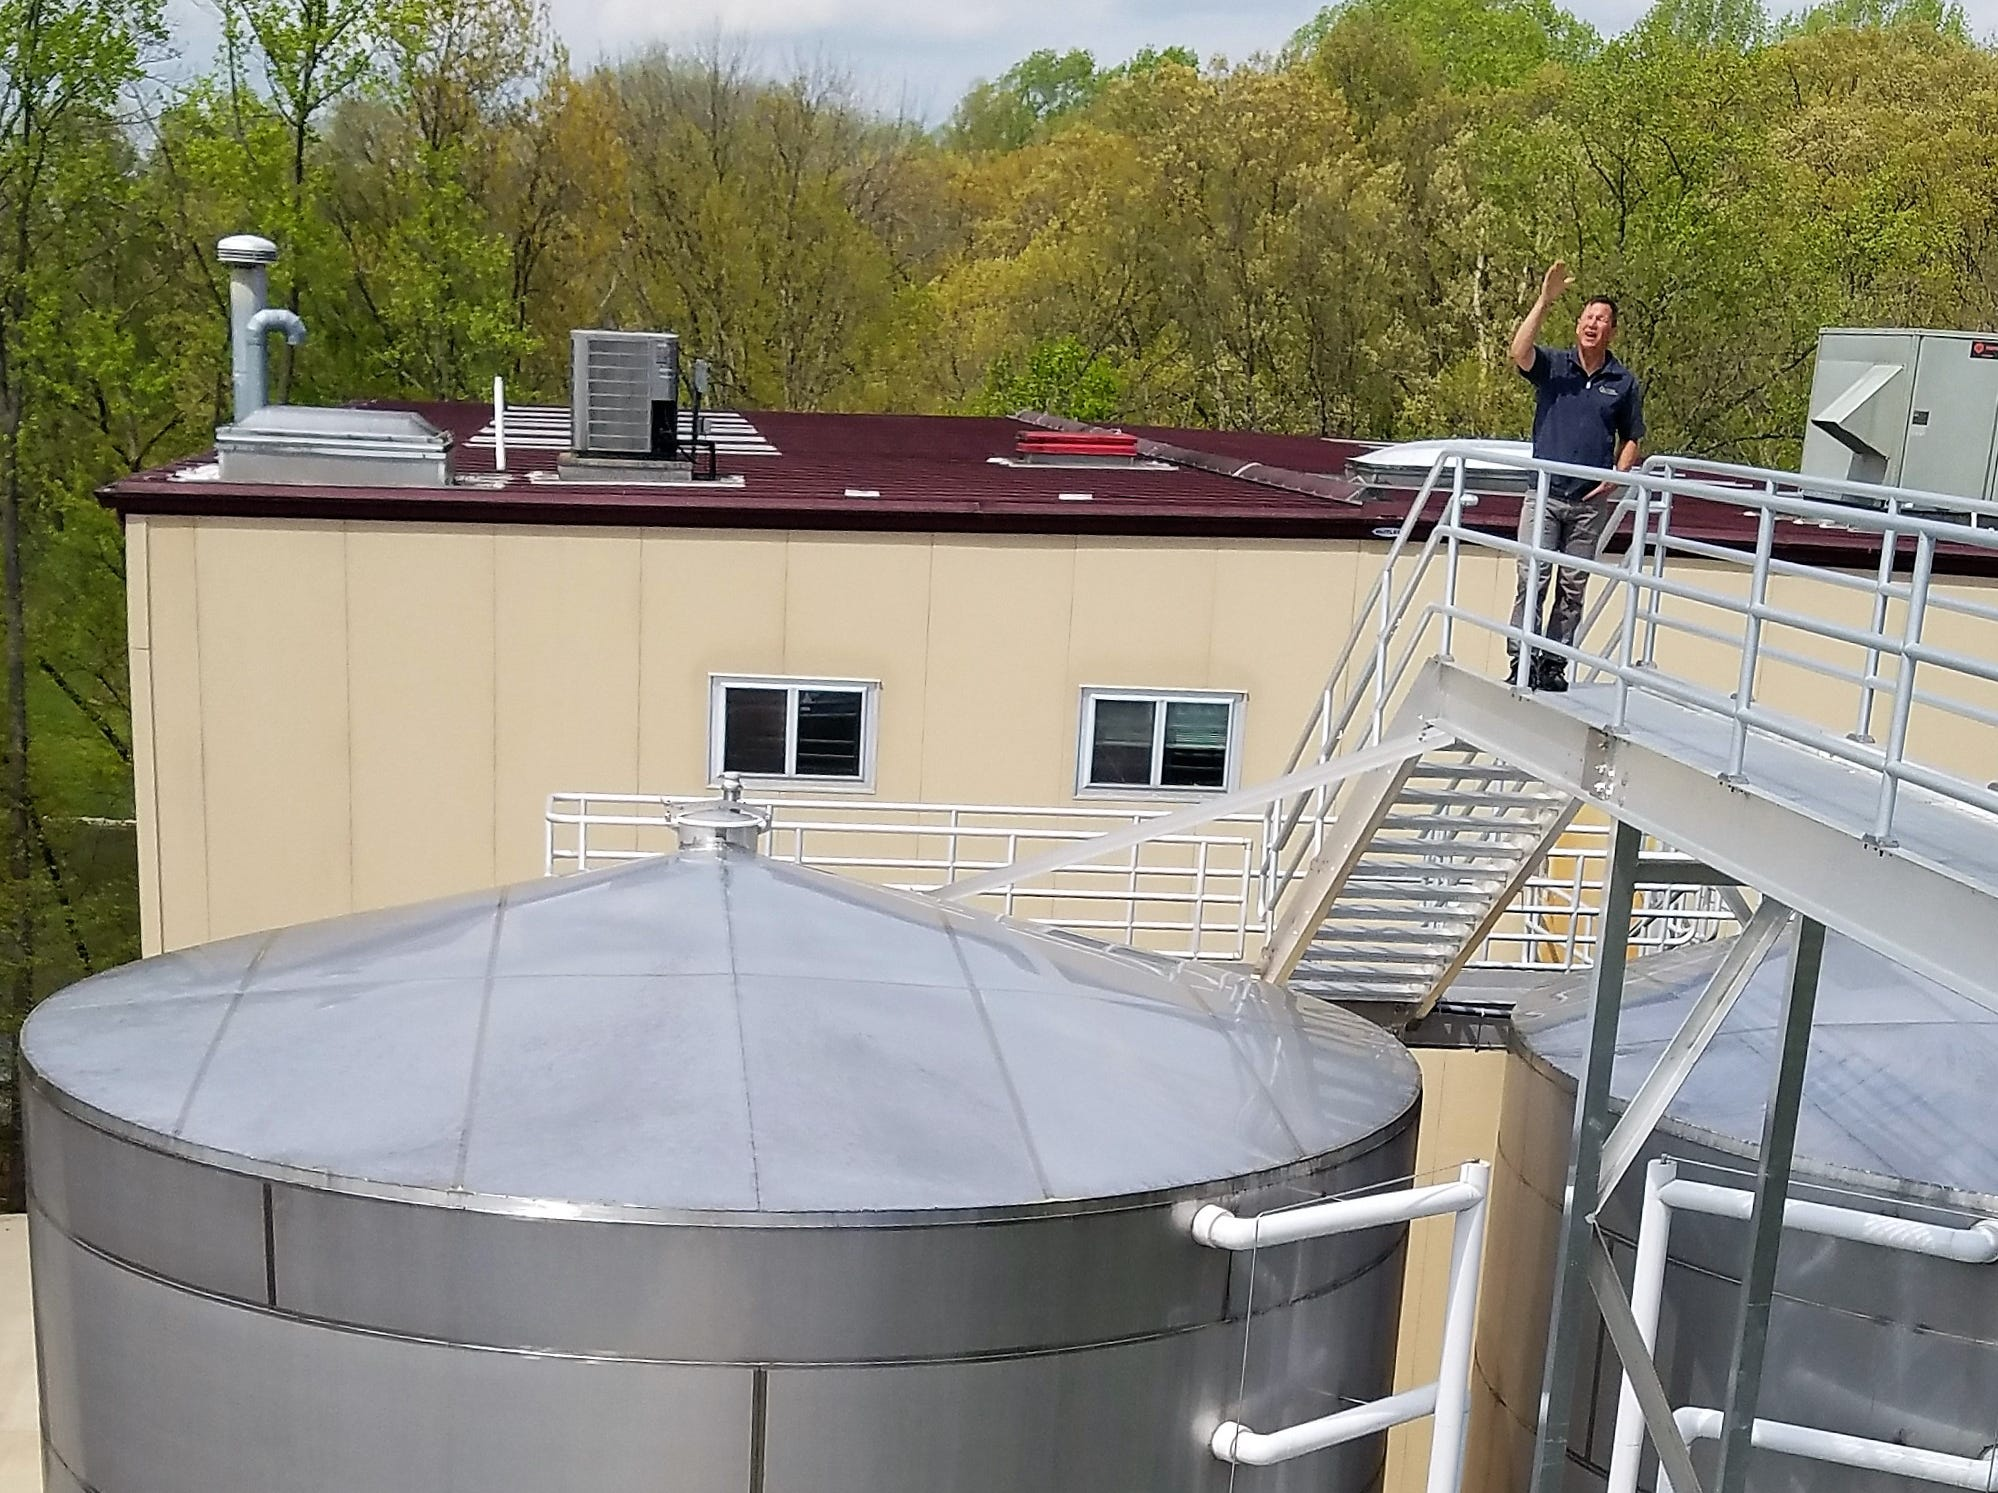 These tanks hold 116,000 gallons of Oliver's most popular wines.